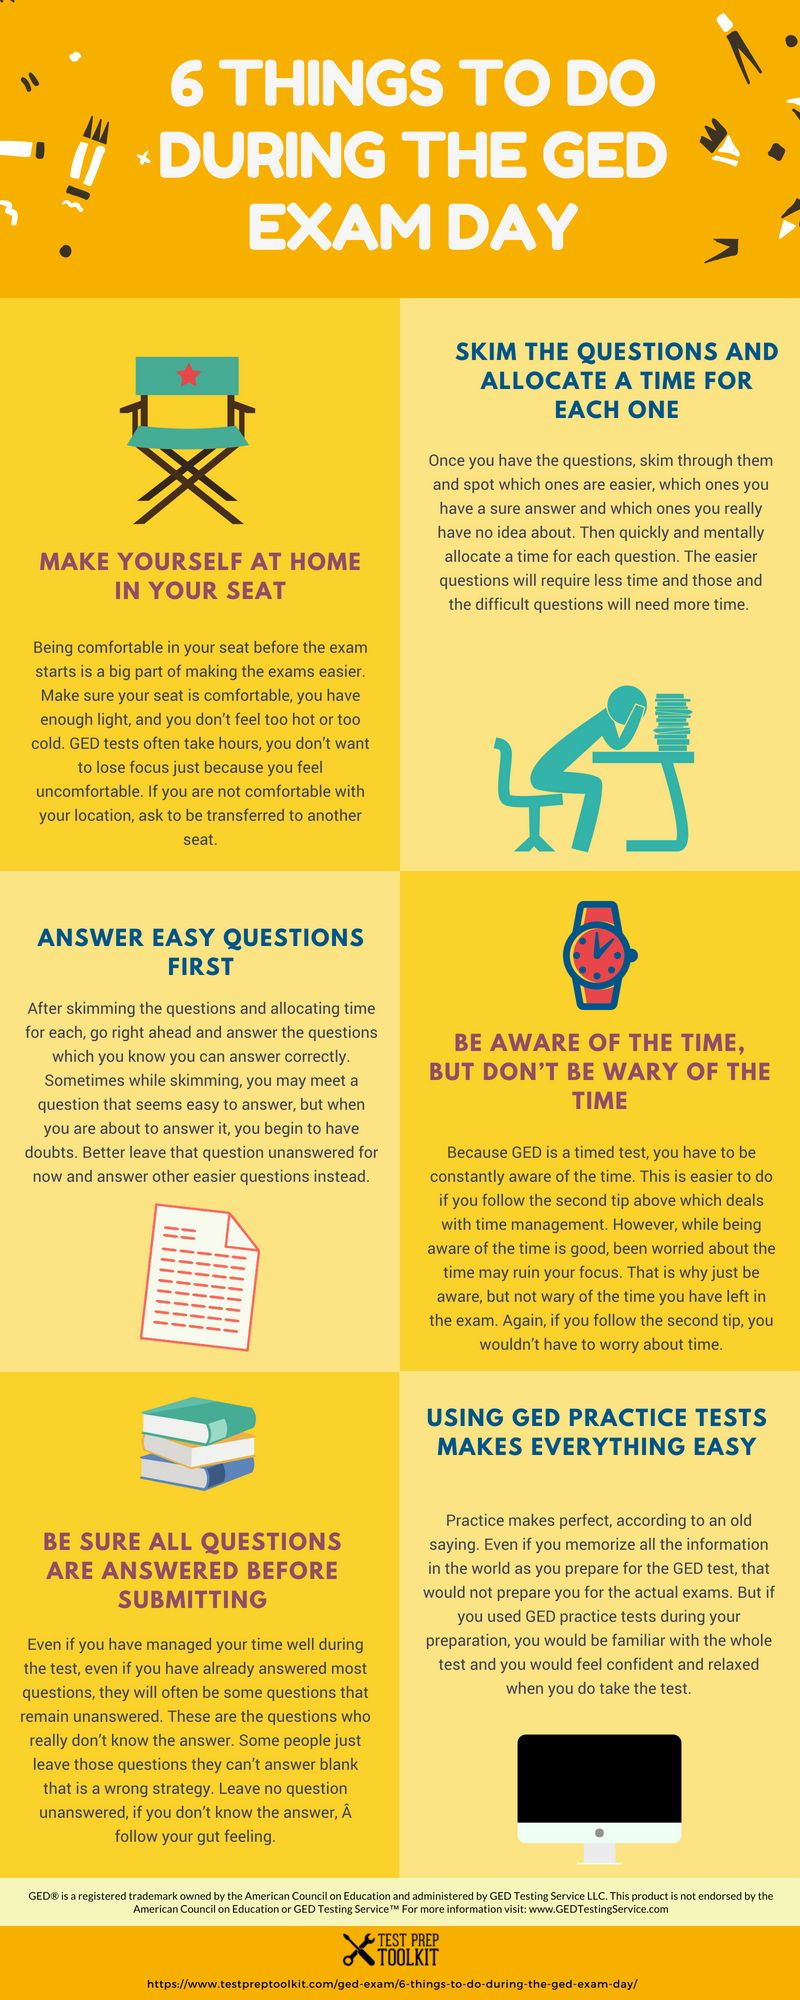 New GED infographic 🔥 This infographic has some tips that will help you  during the